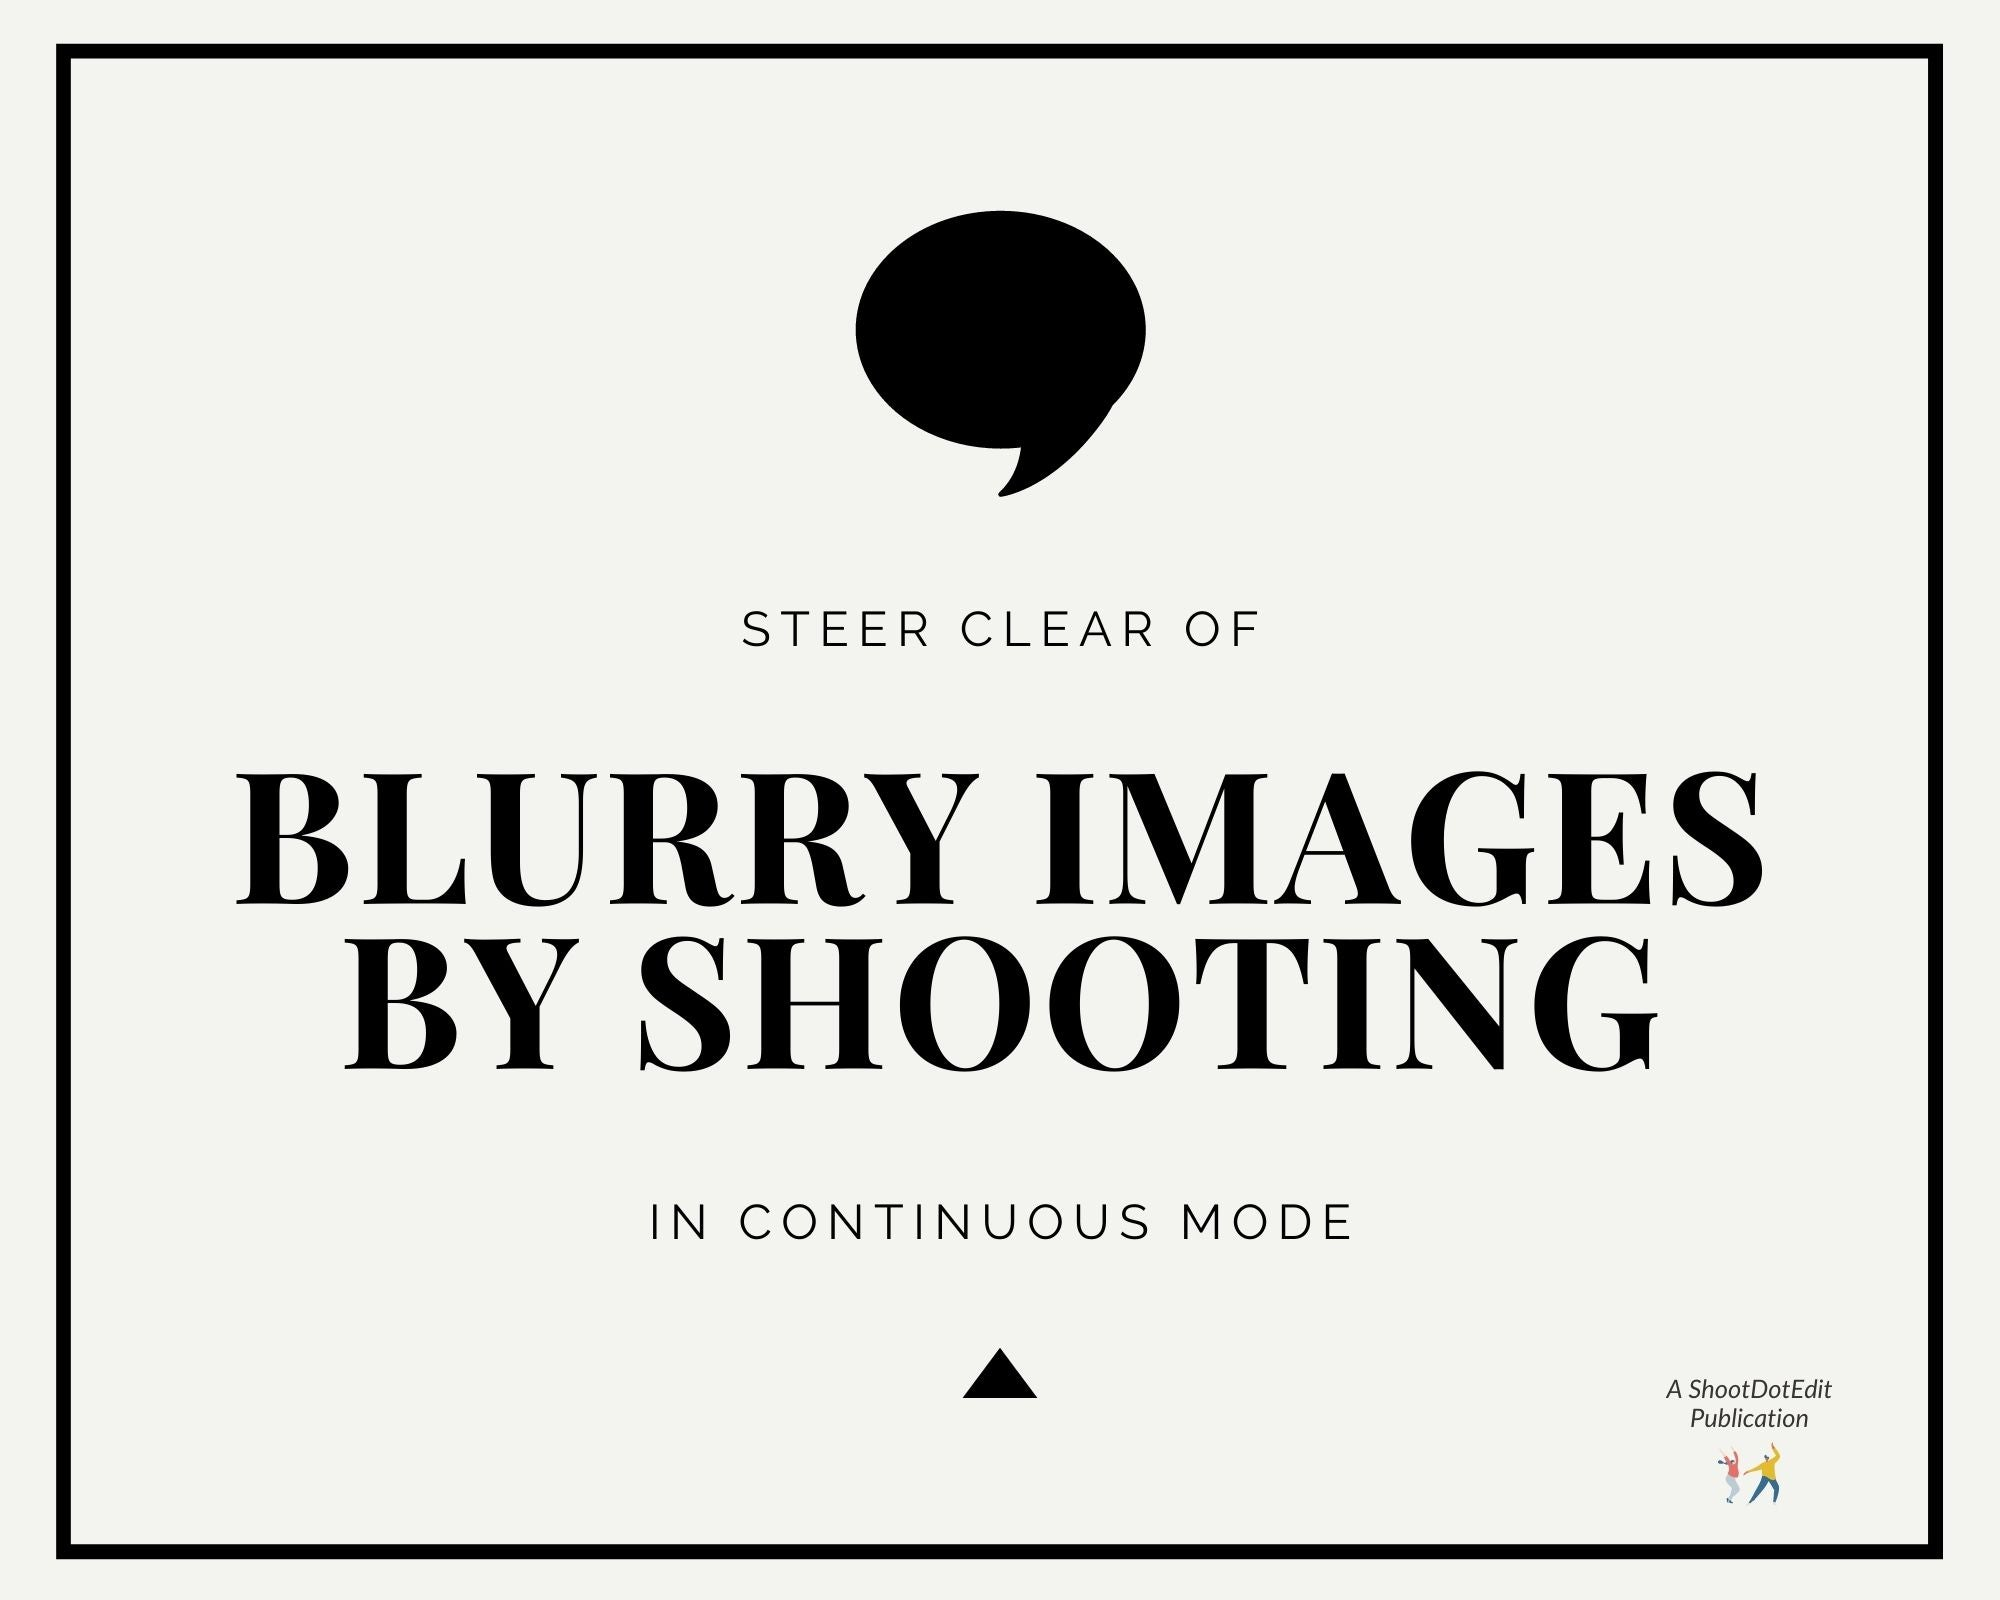 Infographic stating steer clear of blurry images by shooting in continuous mode